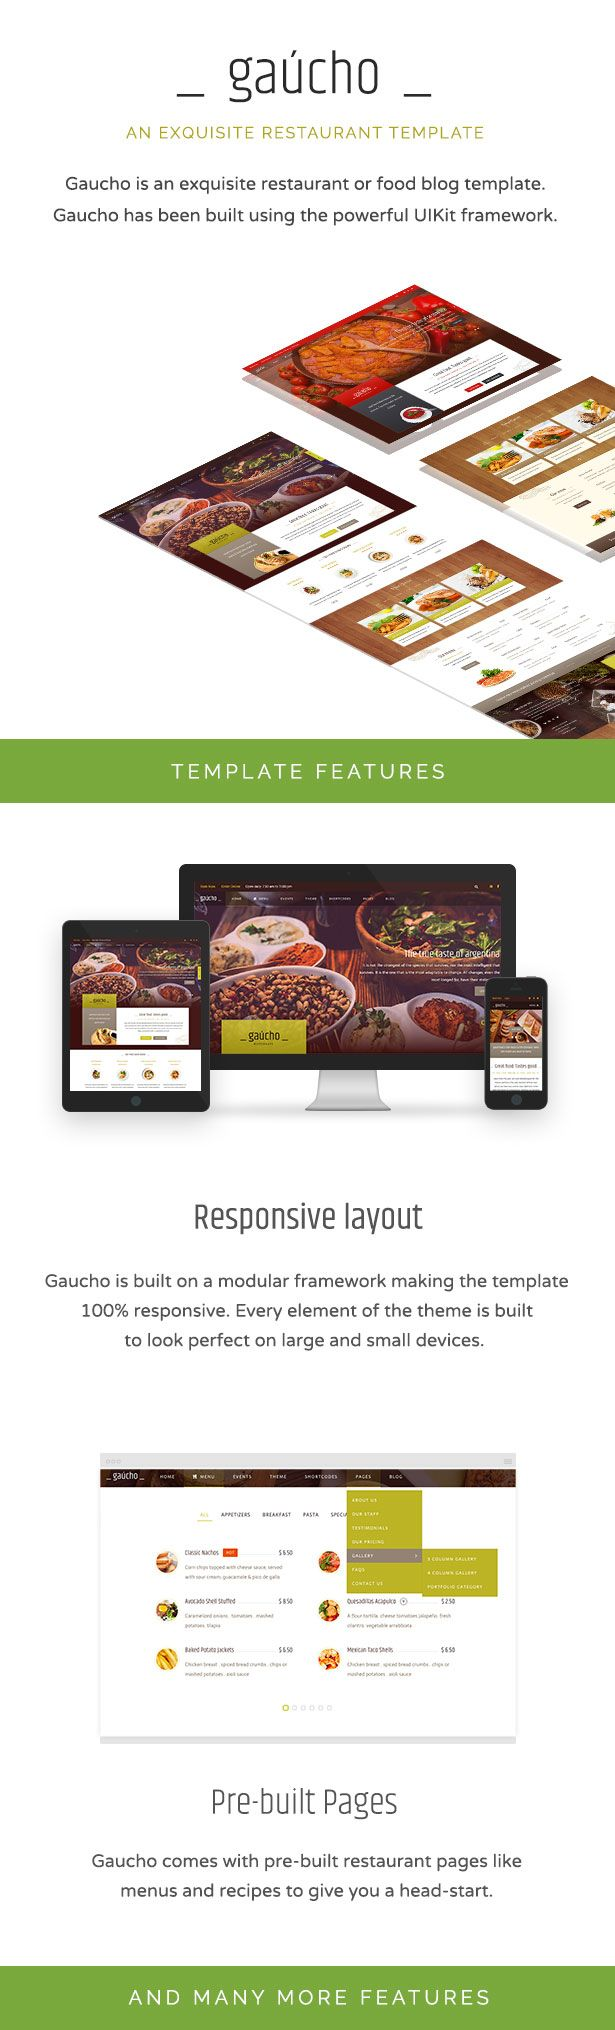 Restaurant and cafe templates are hard to find especially good ones and that's why we designed Gaucho – an exquisite cafe, food blog and restaurant Joomla template built with a unique design and great aesthetics. #food #blog #design #ideas #theme #joomla